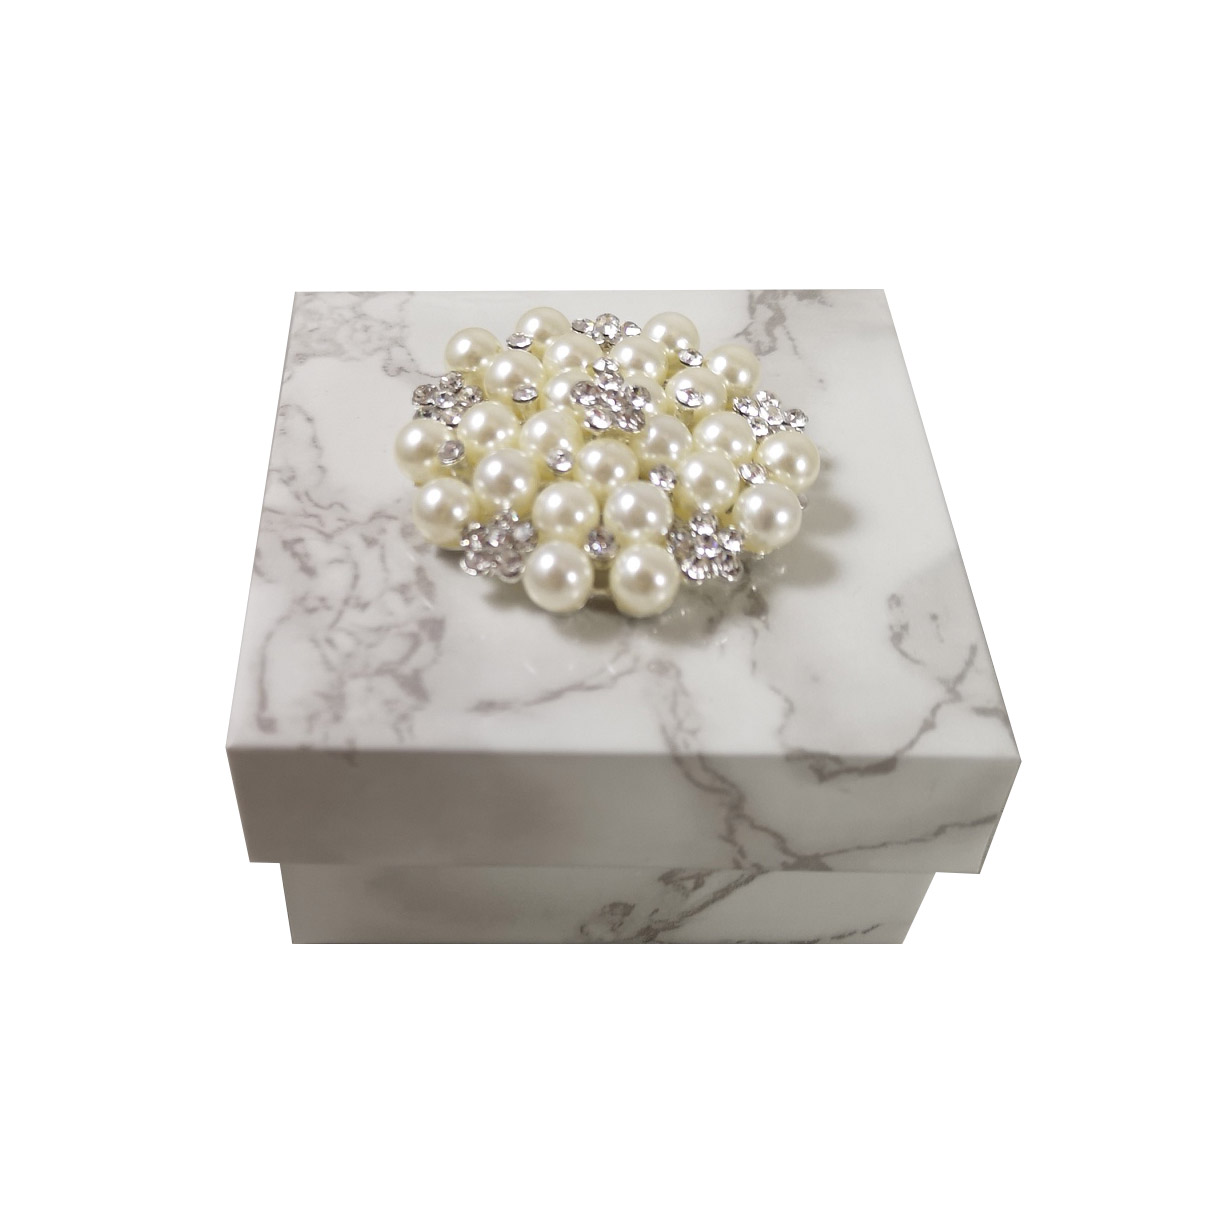 White marble keepsake box